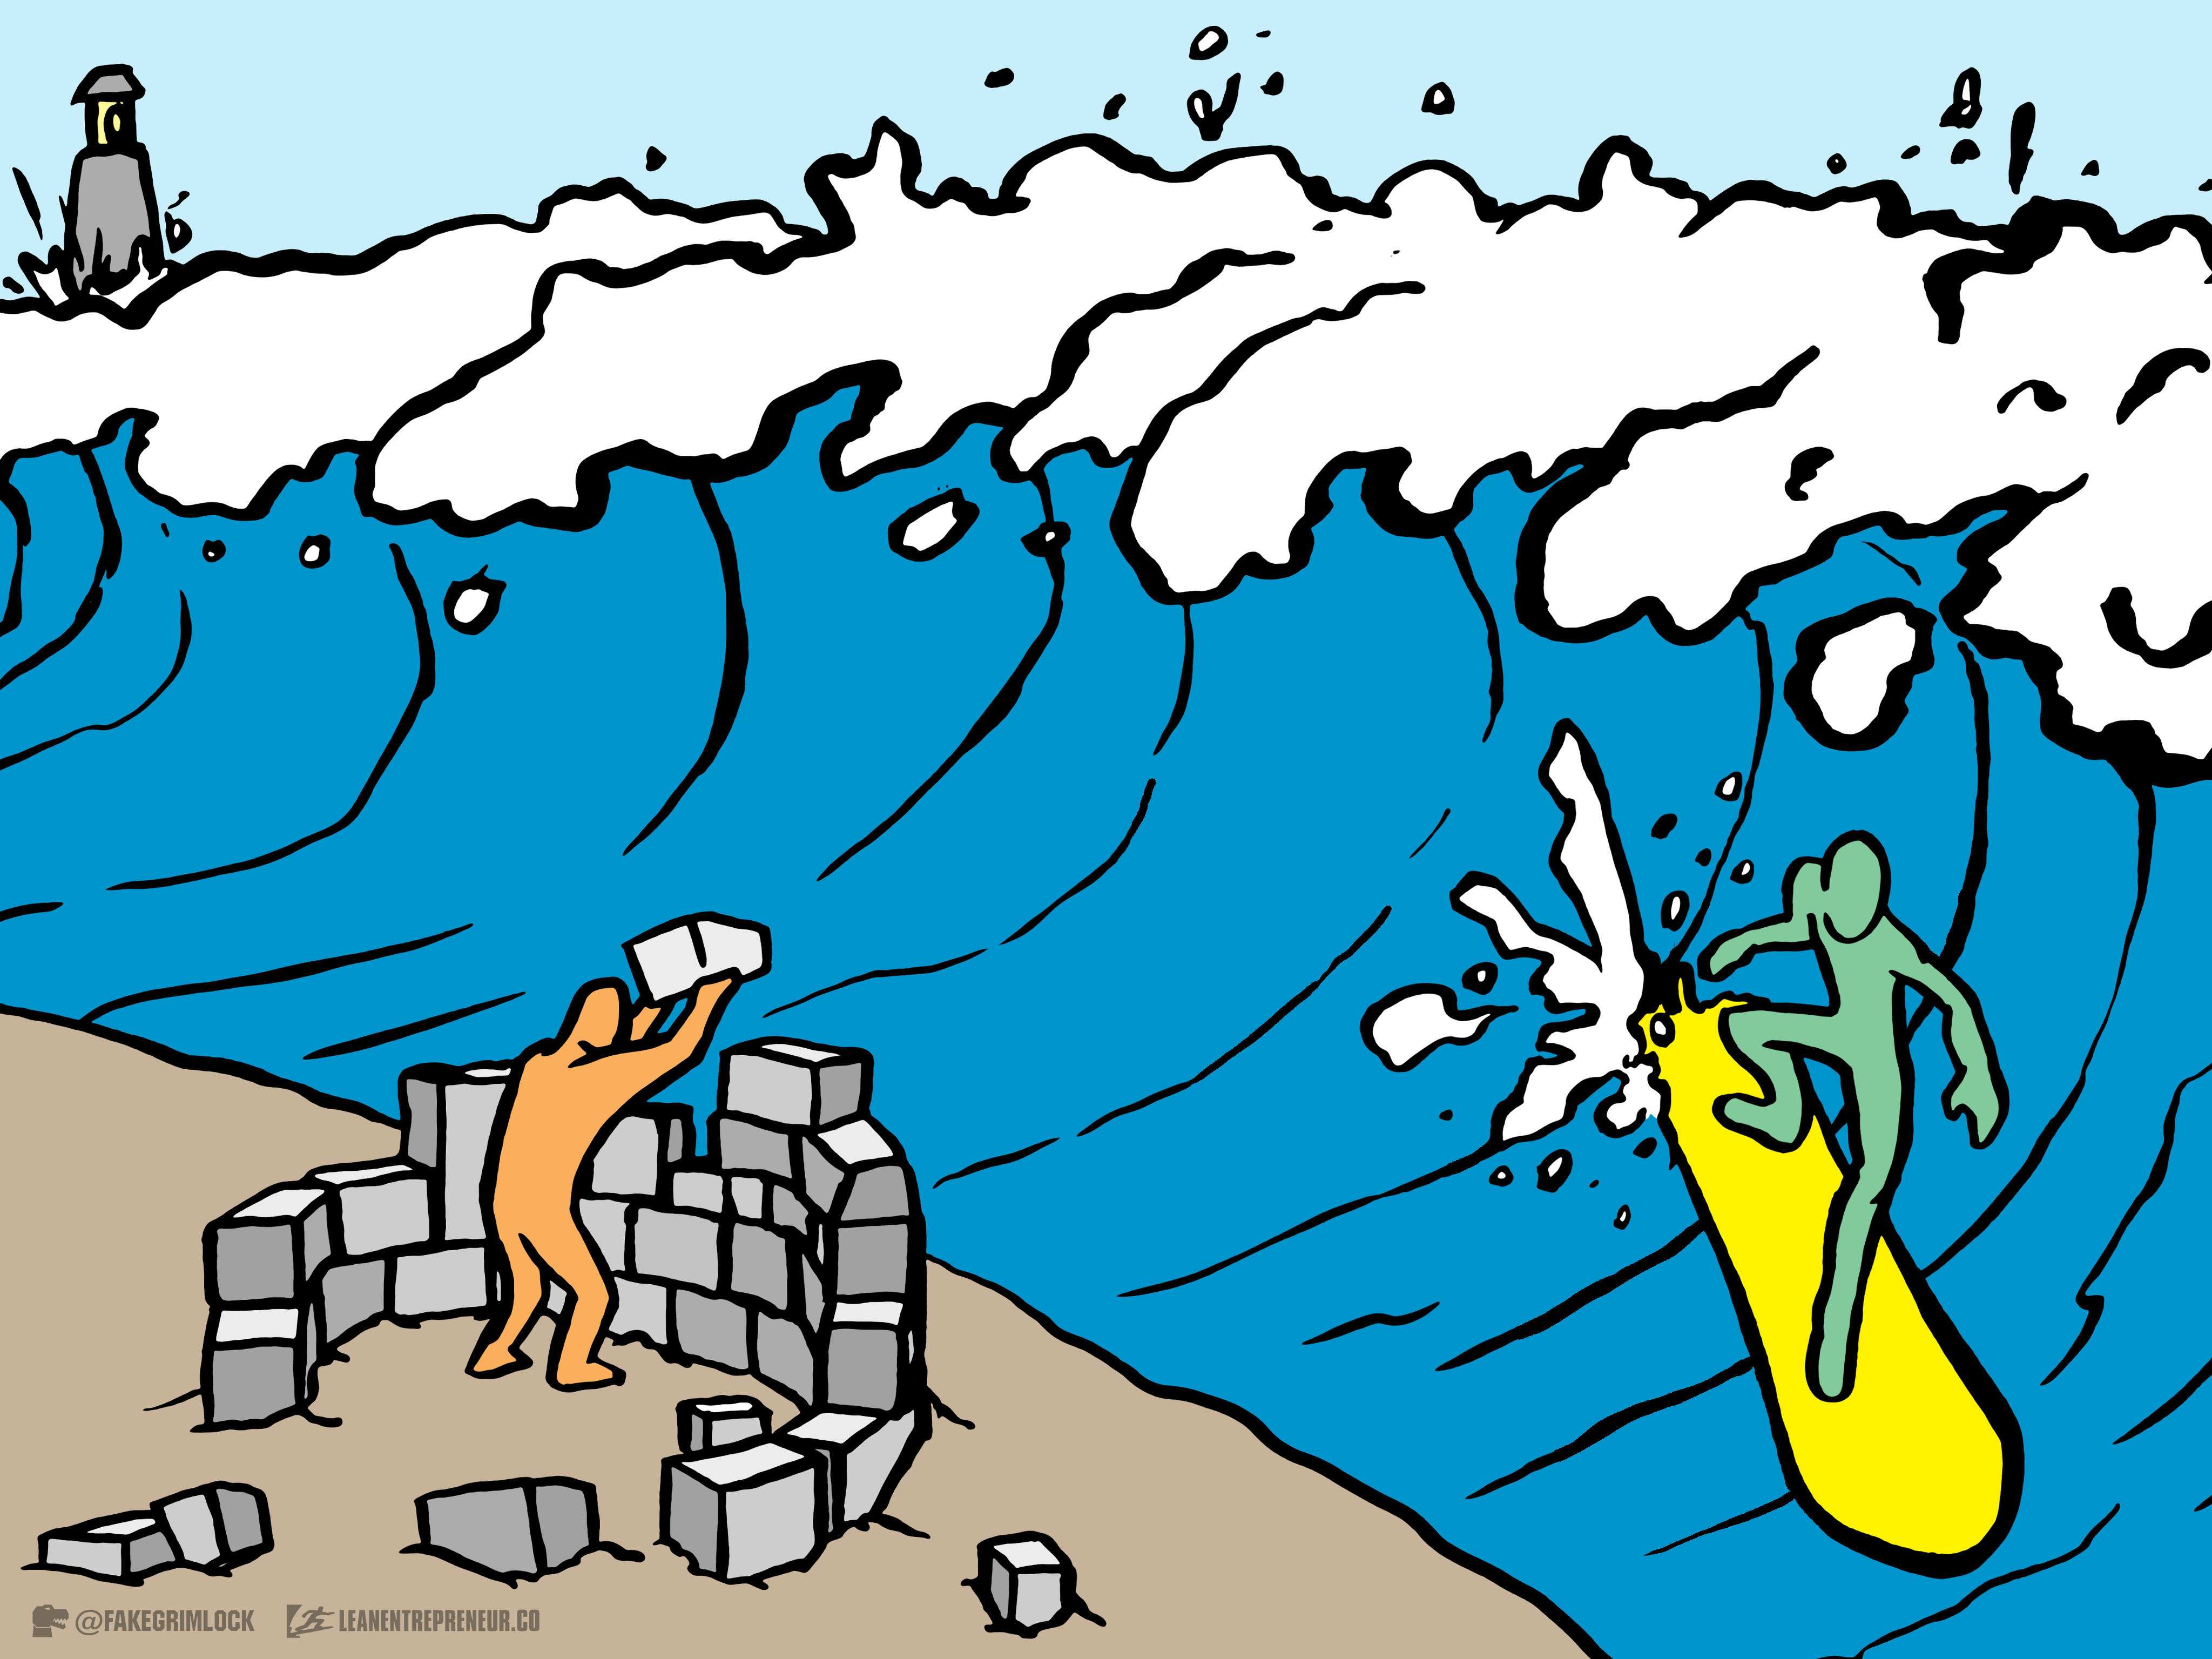 Surf The Wave from The LeanEntrepreneur.co